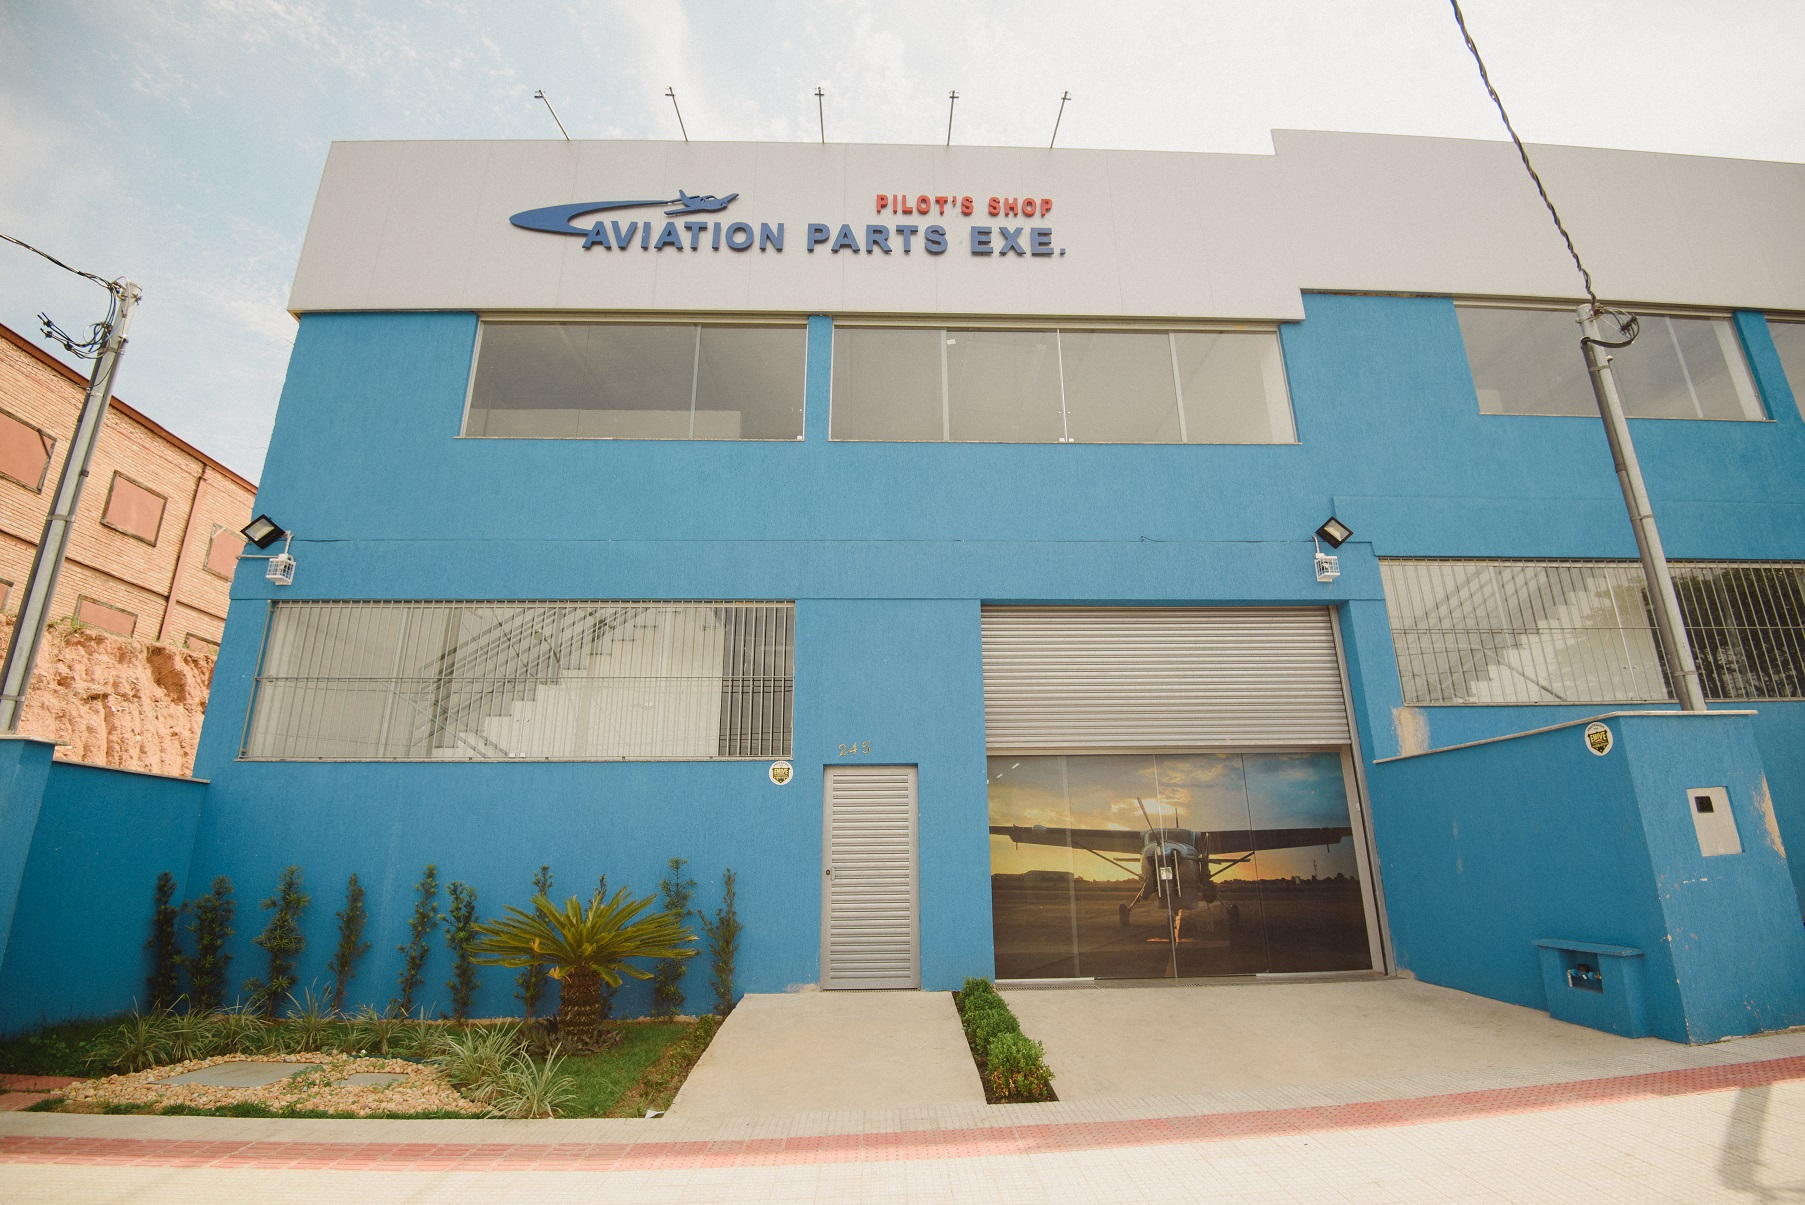 aviation parts executive loja de produtos aeronauticos 2